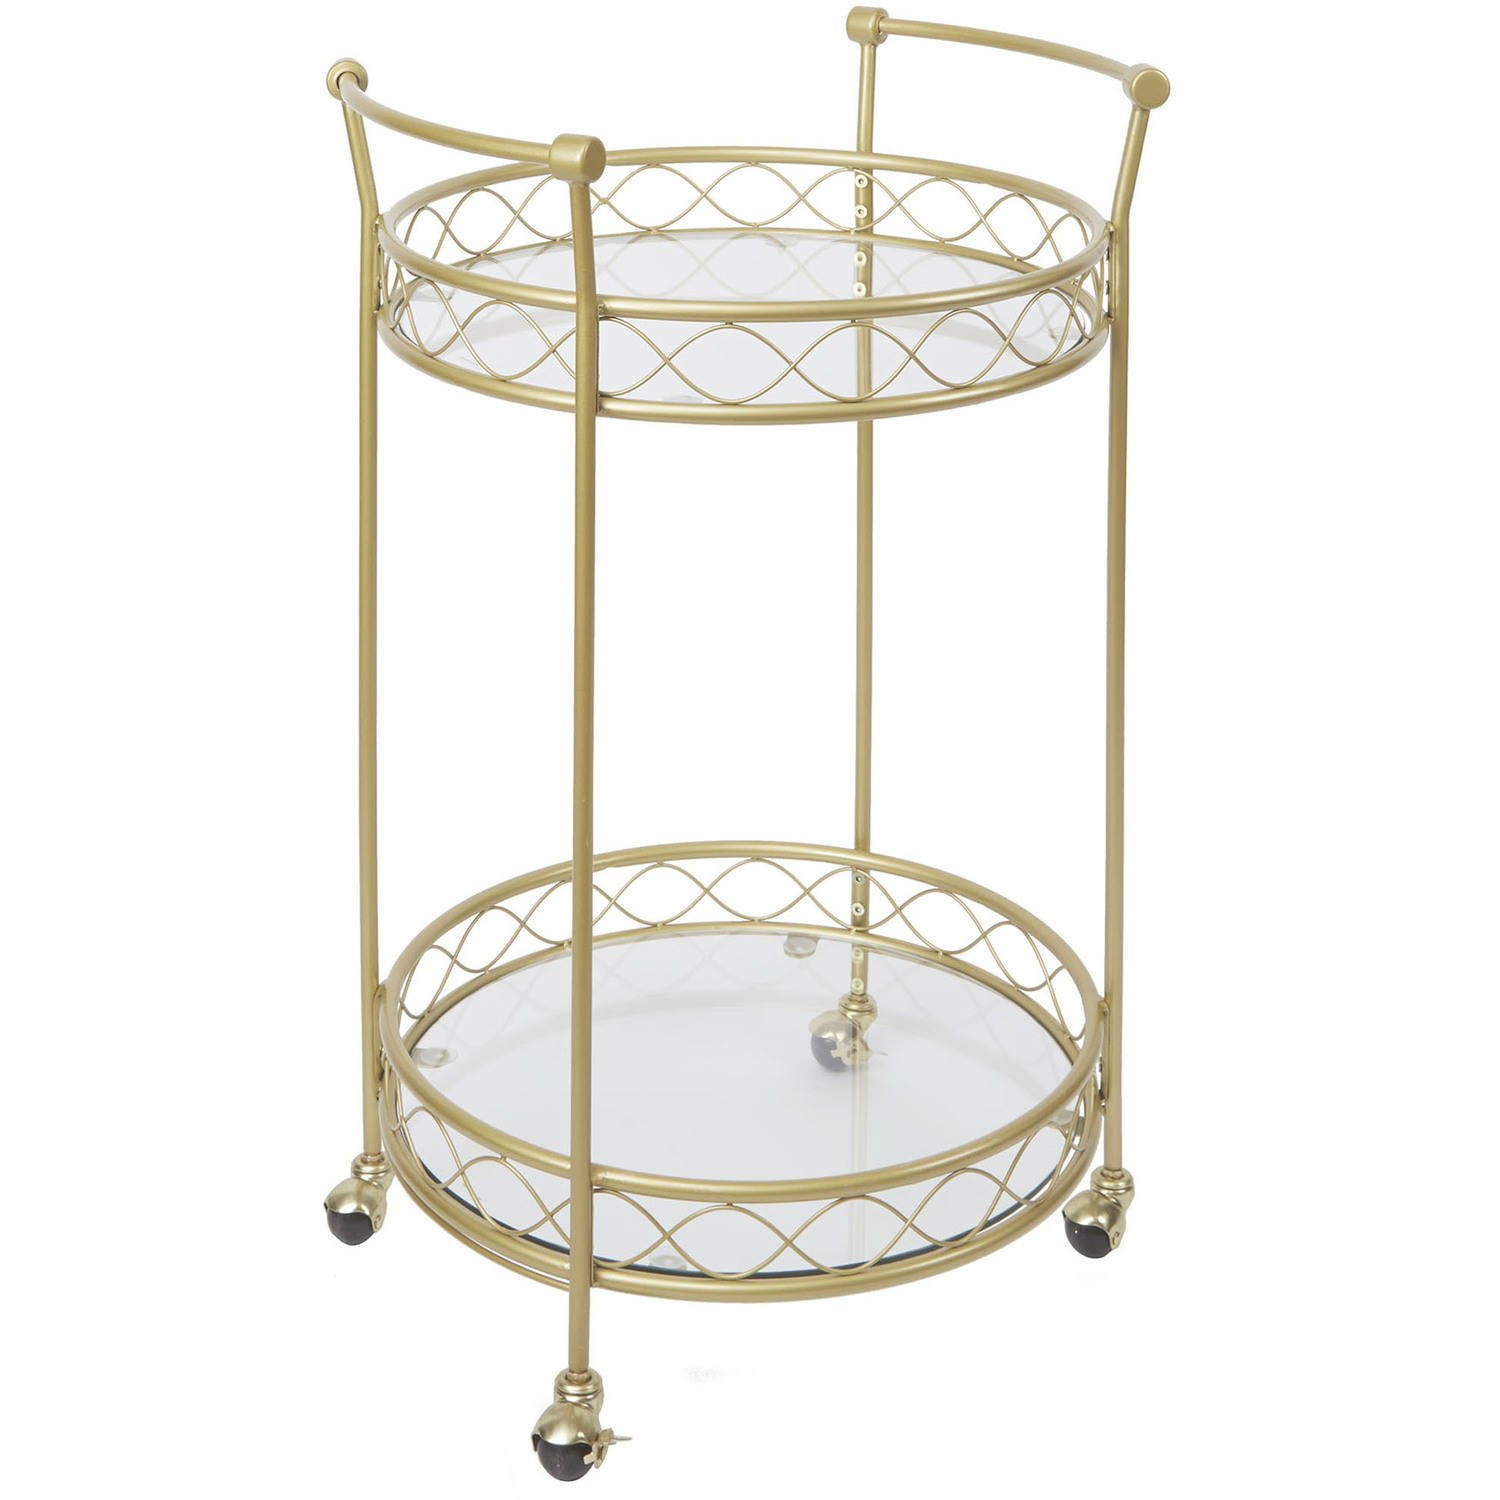 Chic Versatile Sturdy Luxe Gold Finished Serving Bar Cart with Tempered Glass and 4 Locking Caster Wheels For Easy Mobility by Better Homes and Gardens